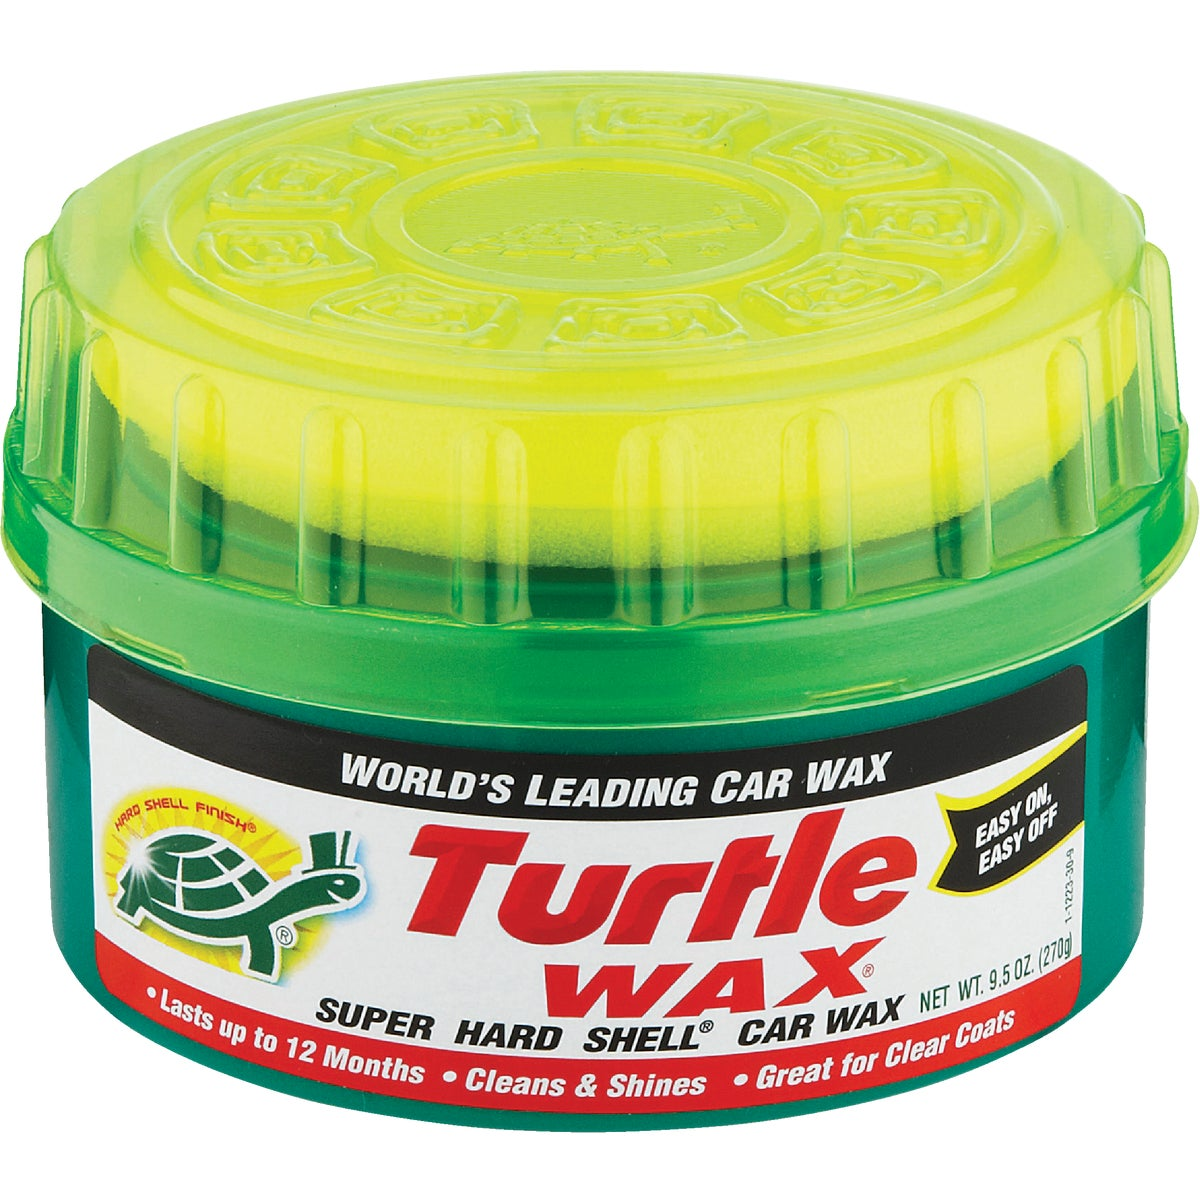 9.5OZ PASTE AUTO WAX - T223R by Turtle Wax Inc